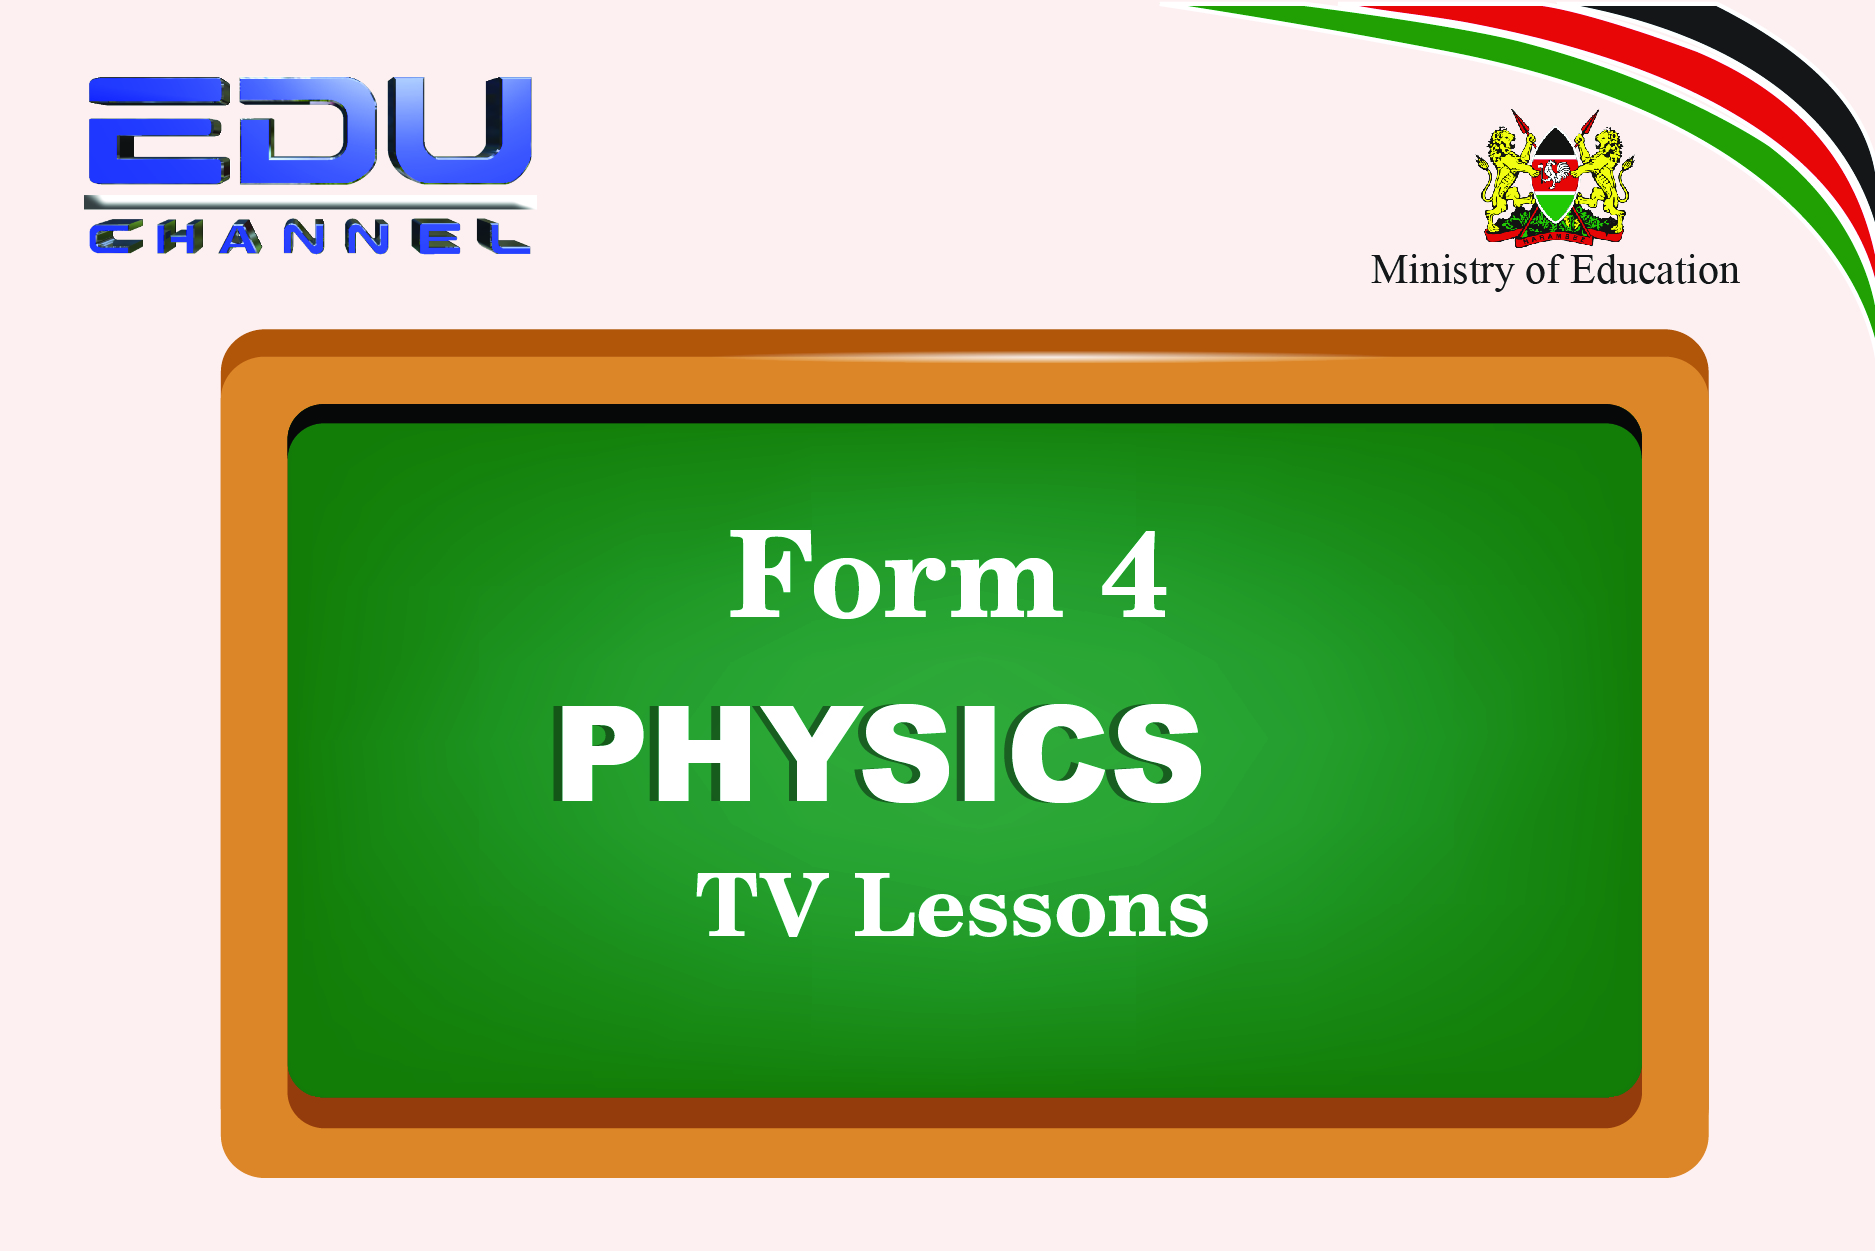 Form 4 physics Lesson 7: Main Electricity - Electrical energy and costing